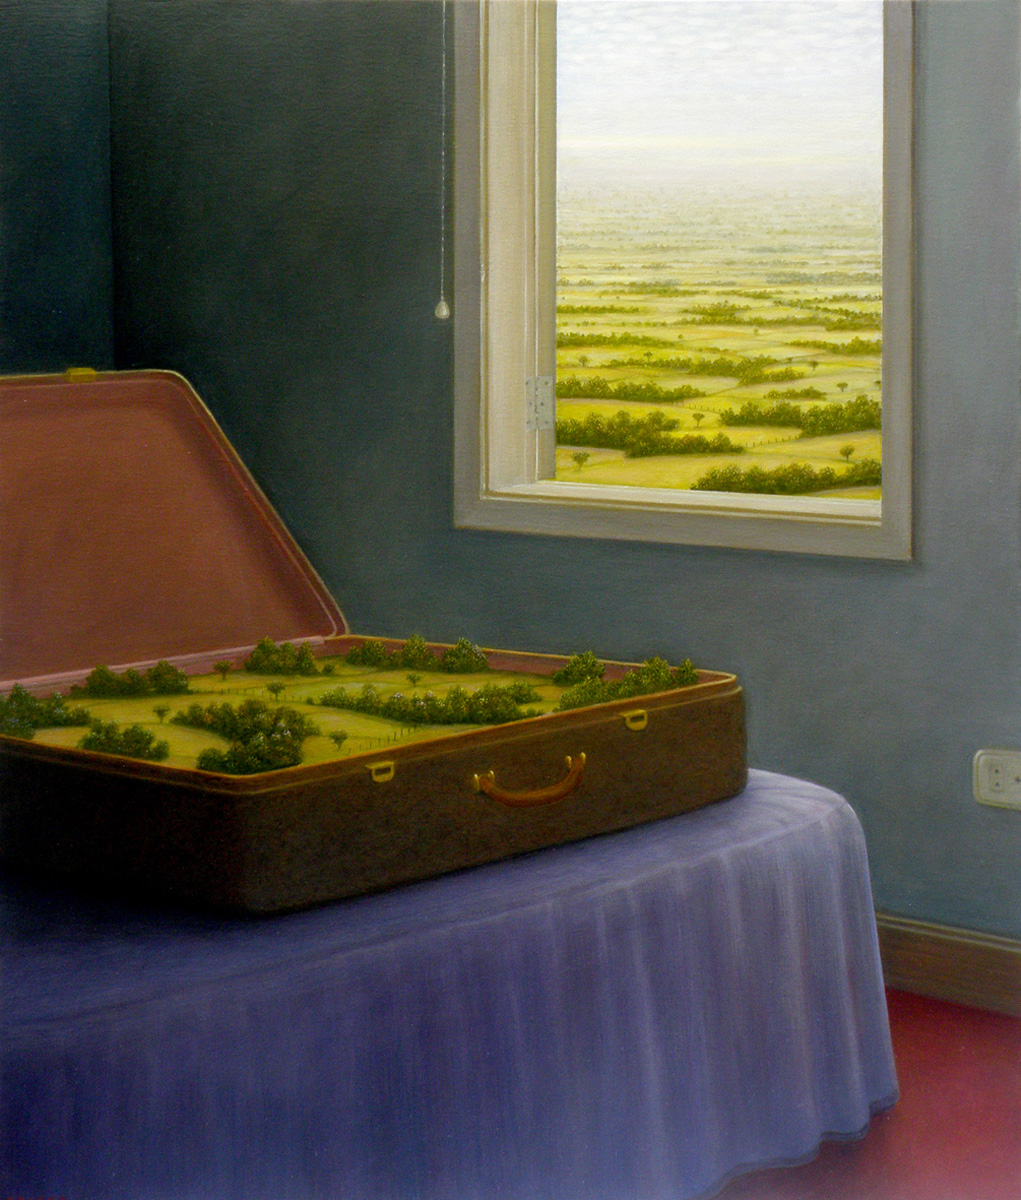 John Fraser - A Souvenir - Oil on canvas 100 x 81cm 2008